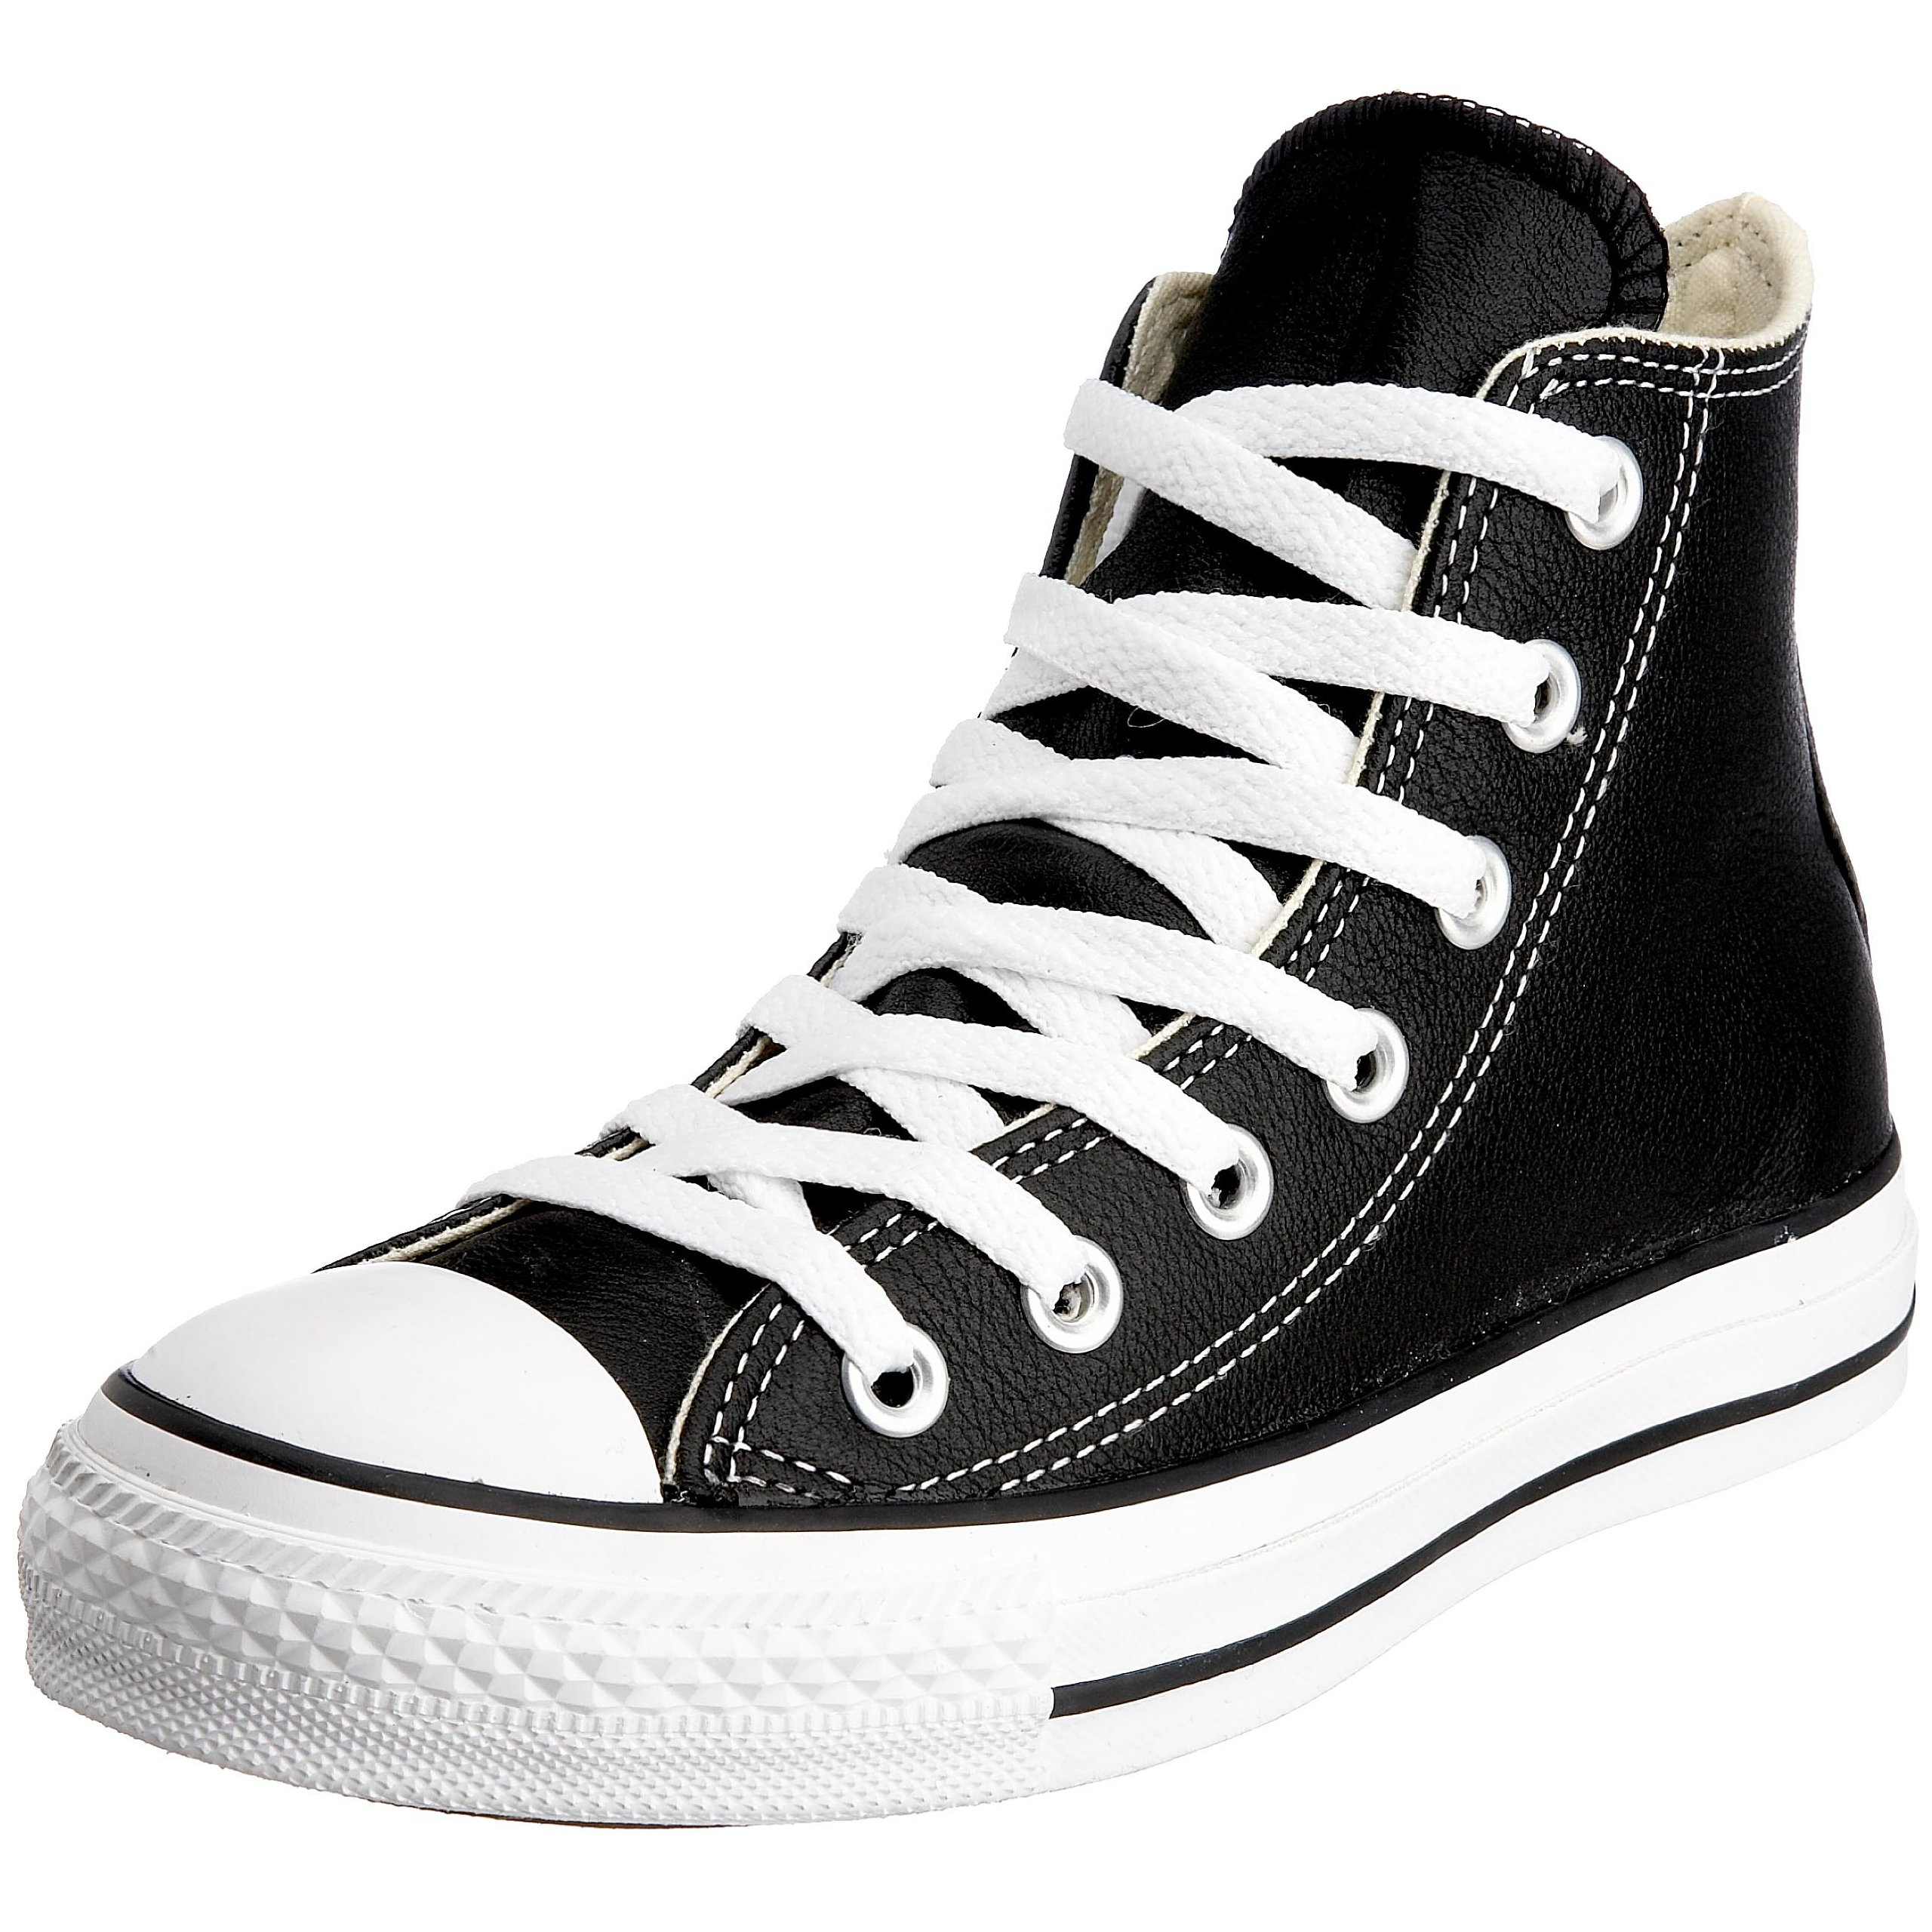 Converse Men's The Chuck Taylor All Star Hi Sneaker 8.5 Black Leather by Converse